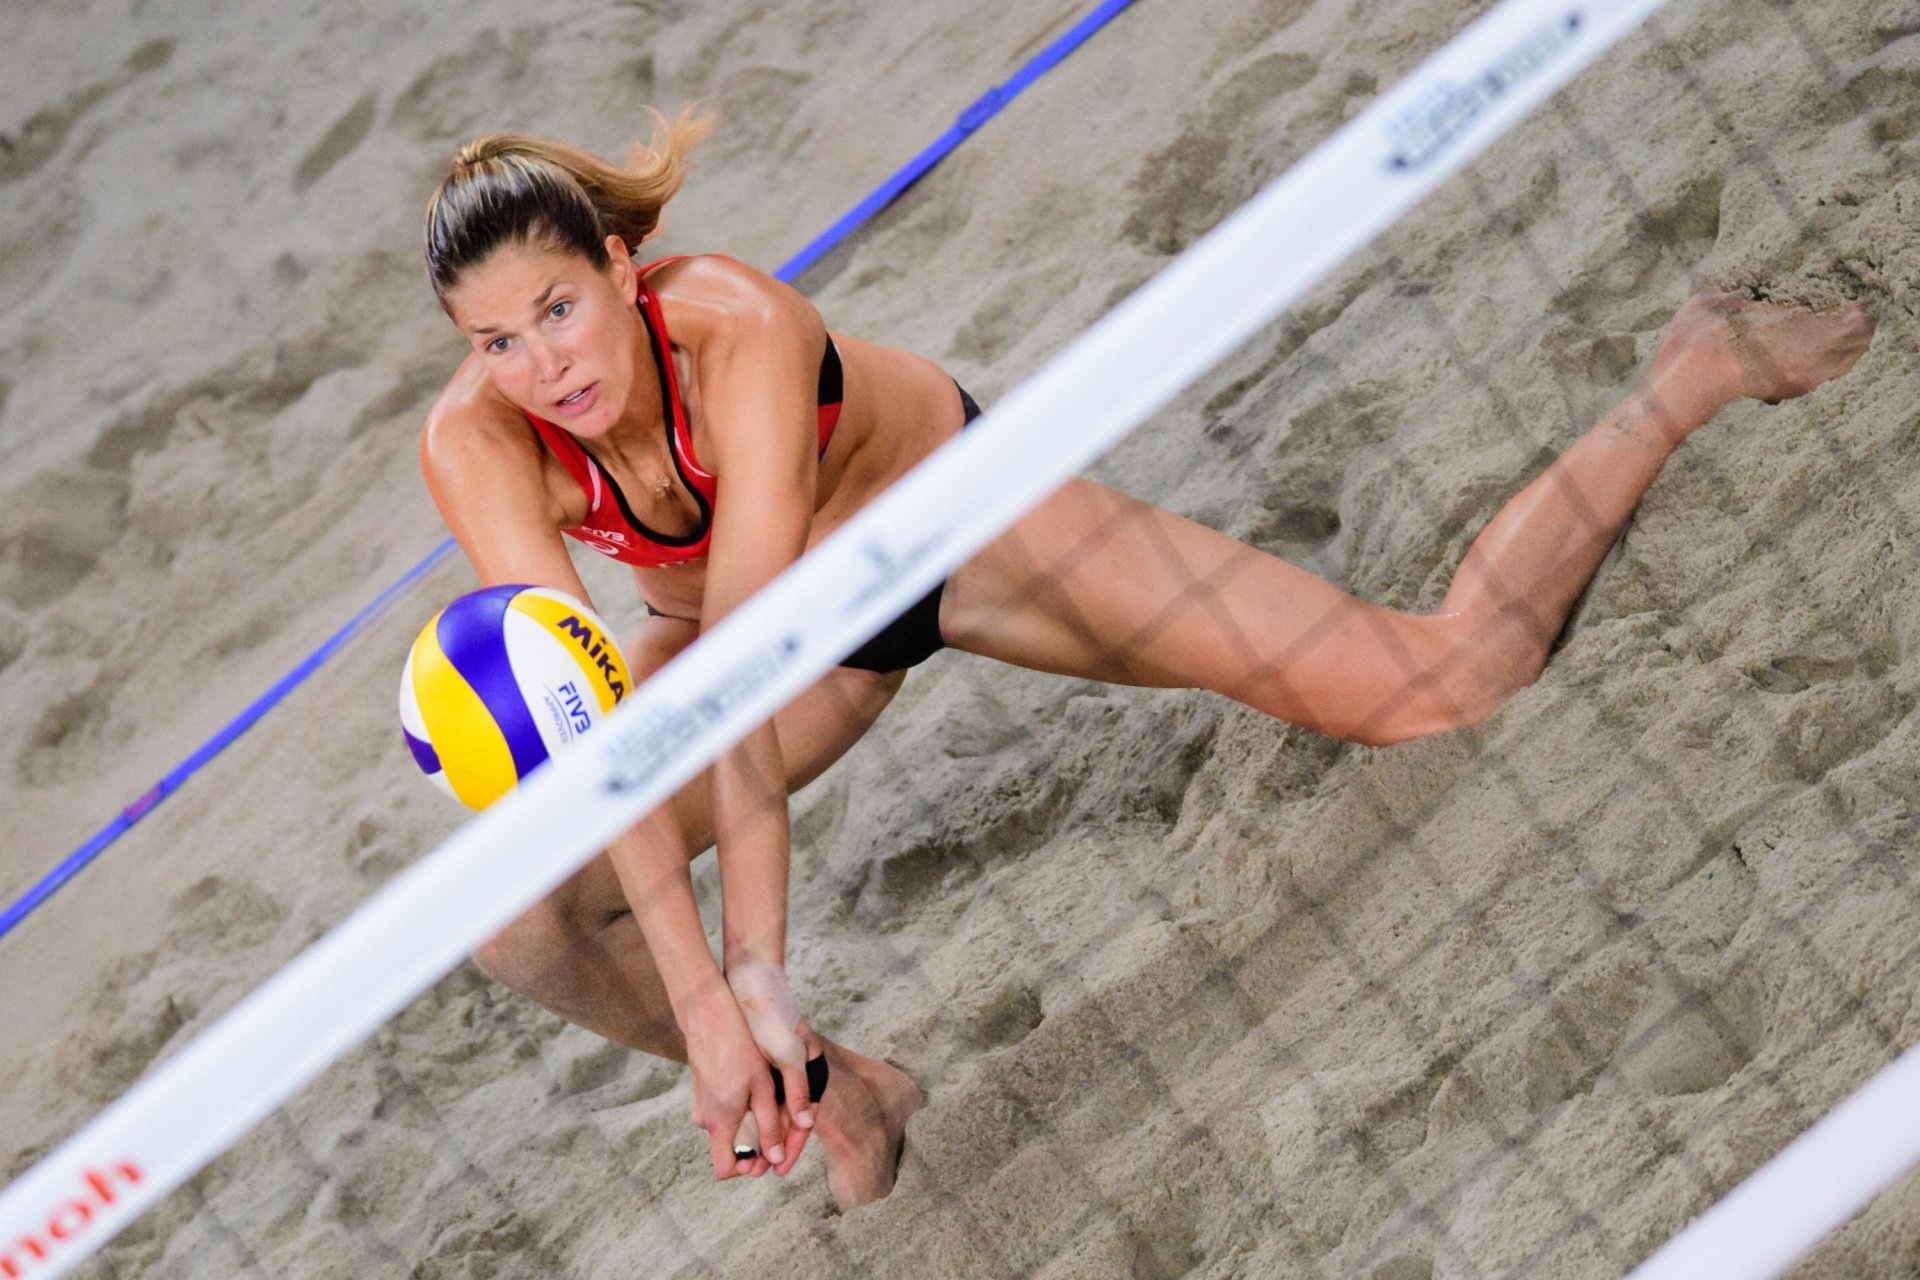 Alix in action on her way to gold in The Hague. Photocredit: FIVB